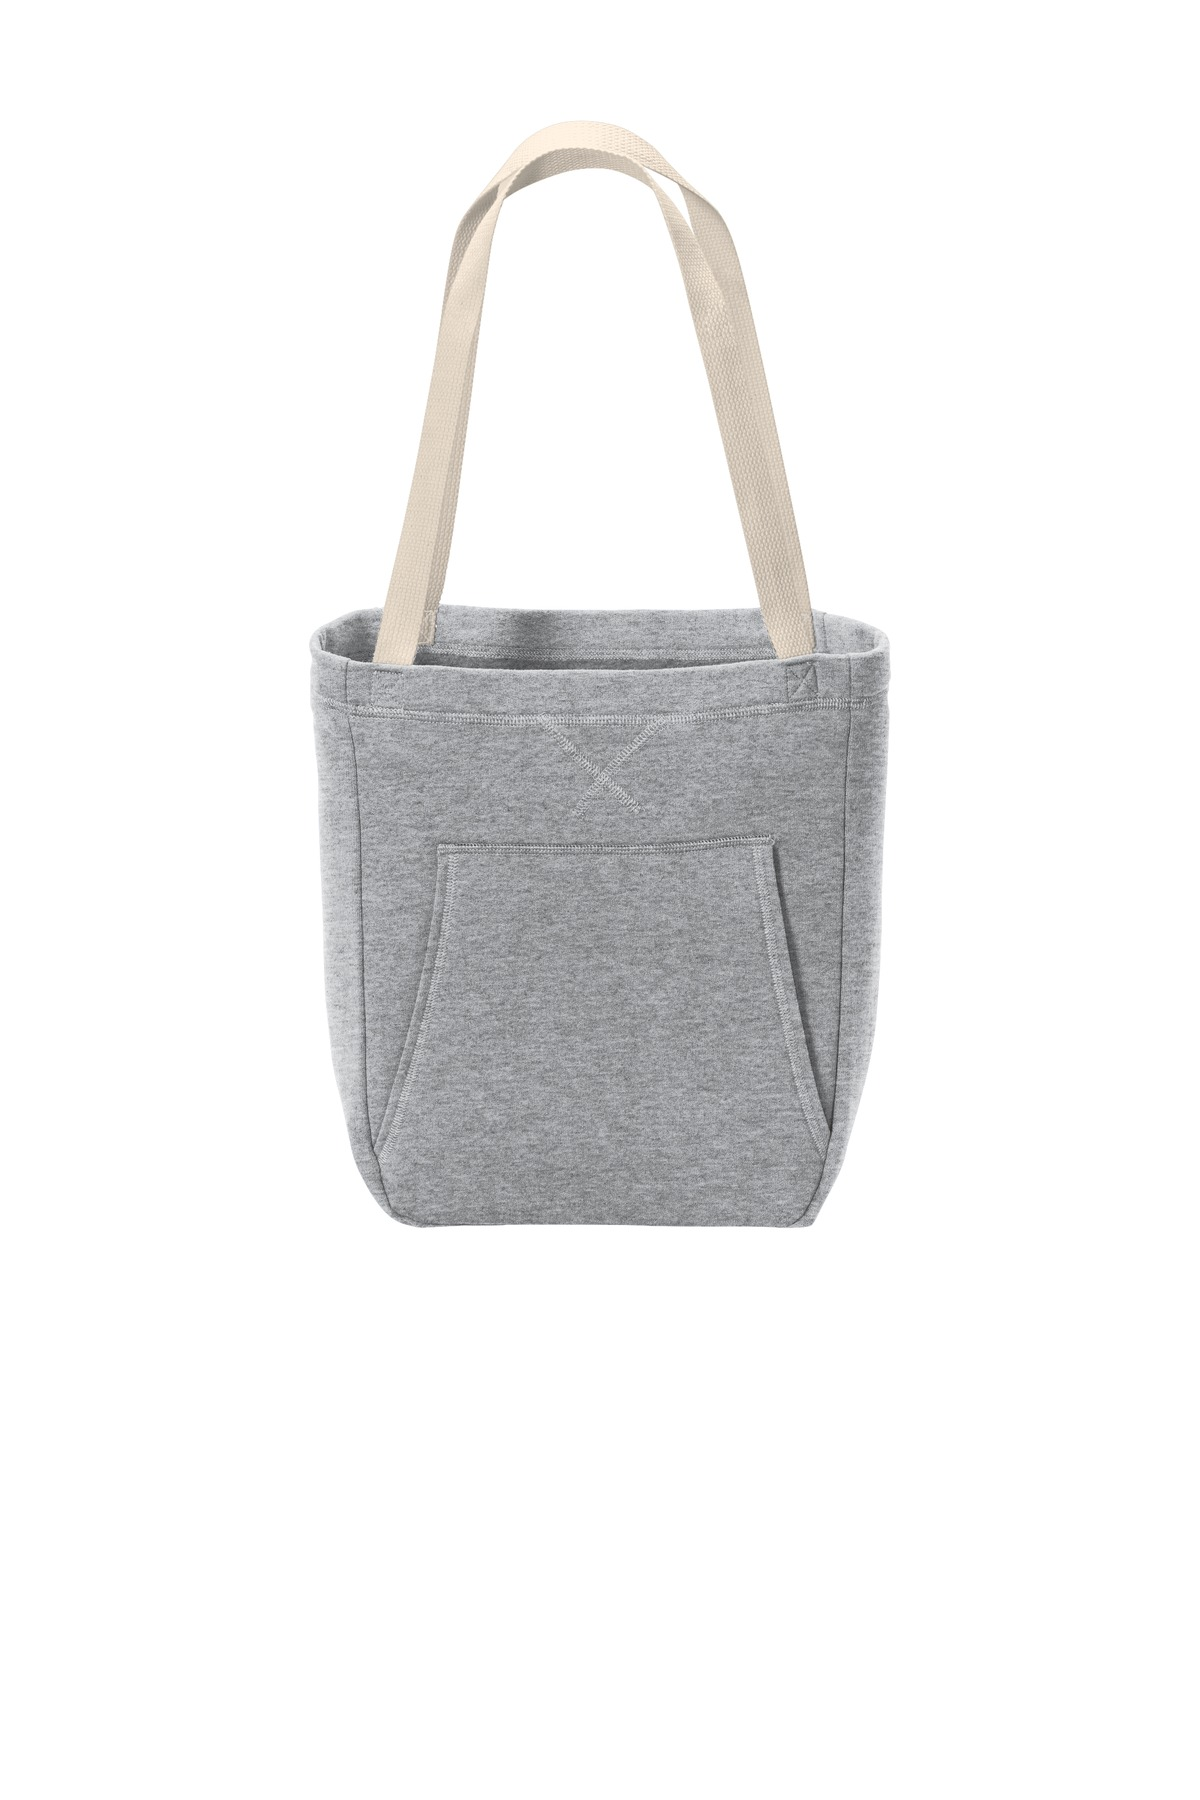 Port & Company  ®  Core Fleece Sweatshirt Tote BG415 - Athletic Heather